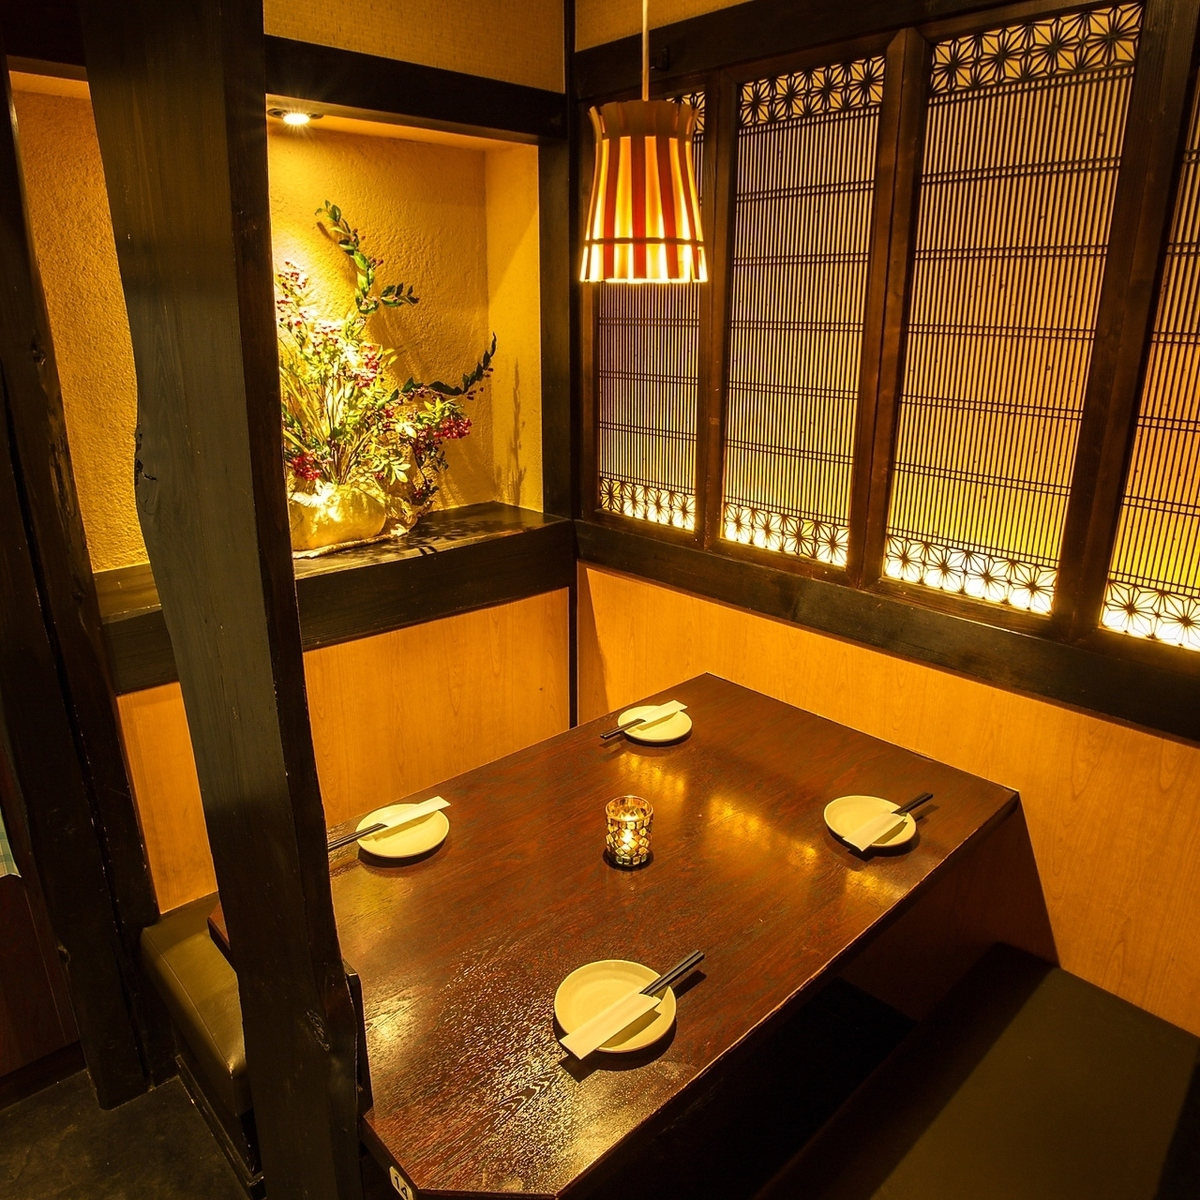 It is a semi-private room with a calm atmosphere.